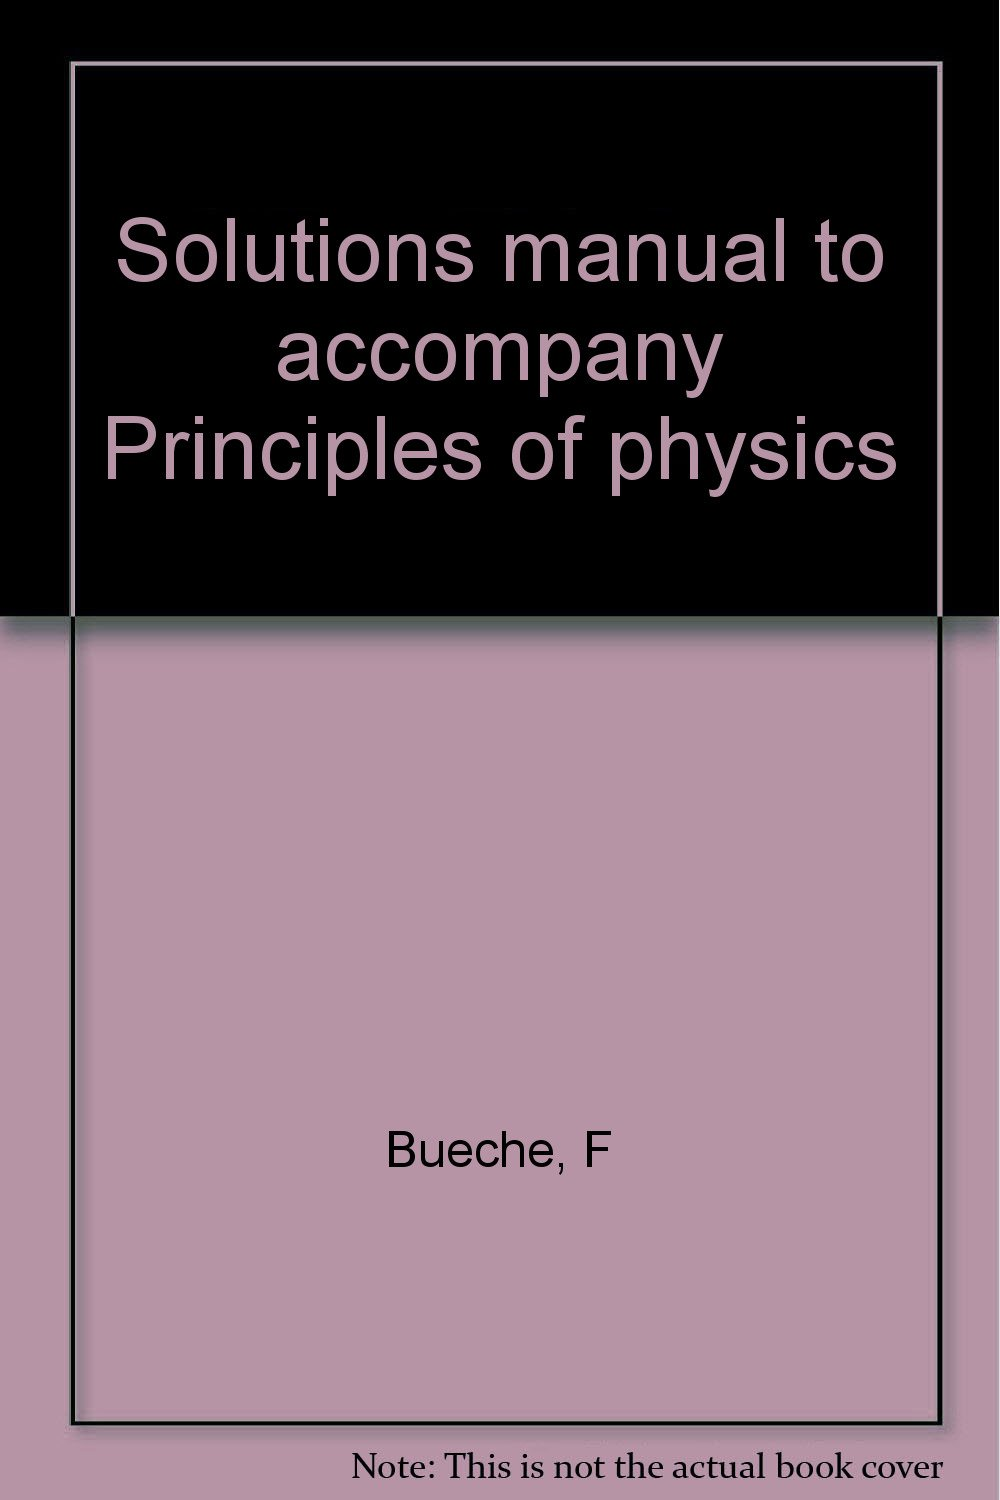 mcgraw hill physics solution manual